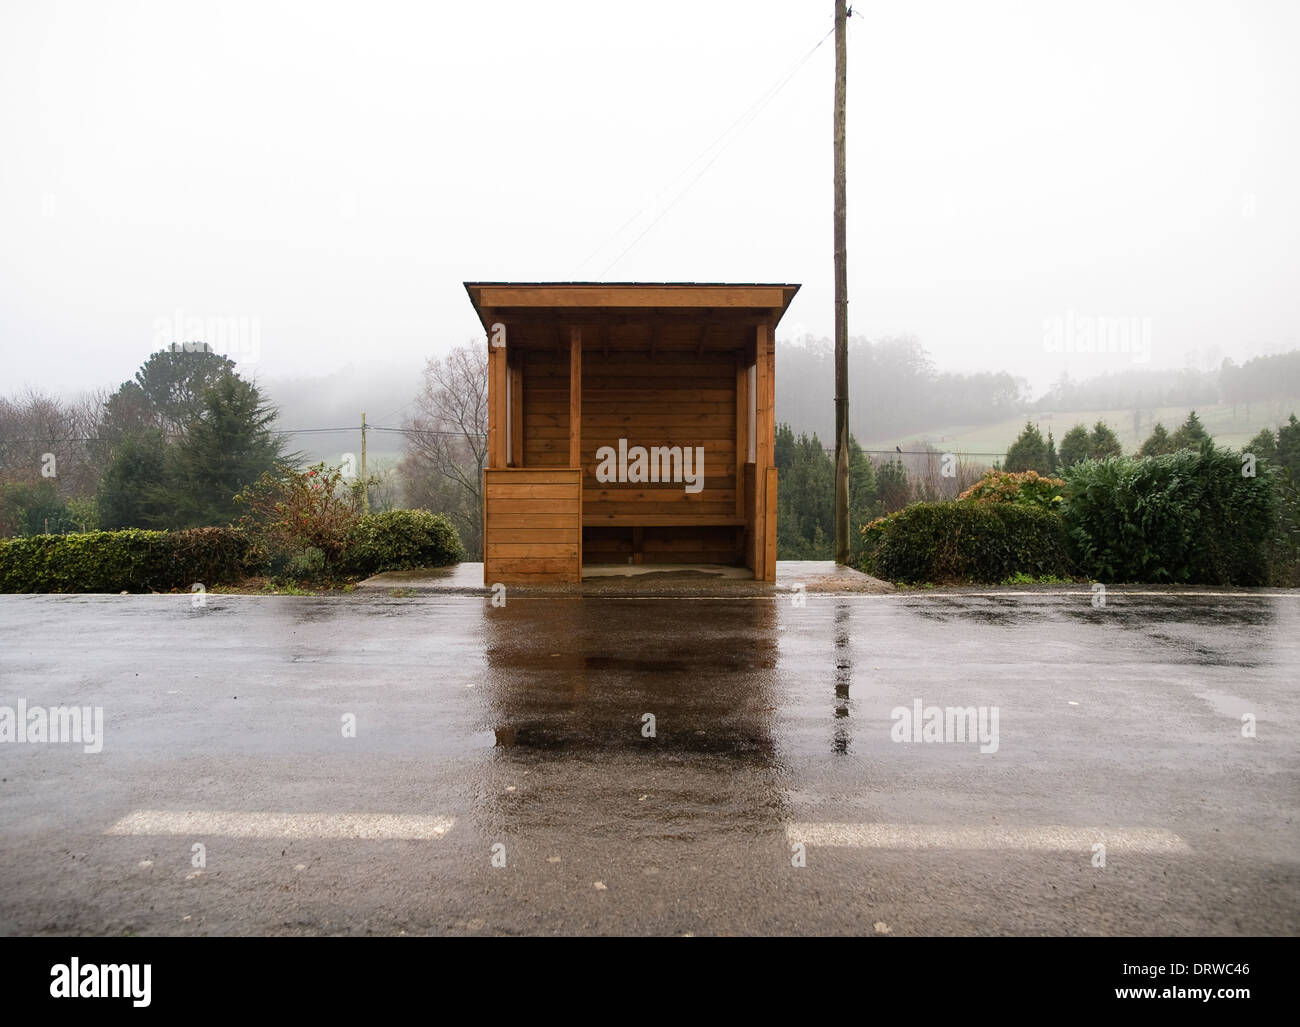 Wooden bus stop in Galicia, Spain in a misty morning. - Stock Image